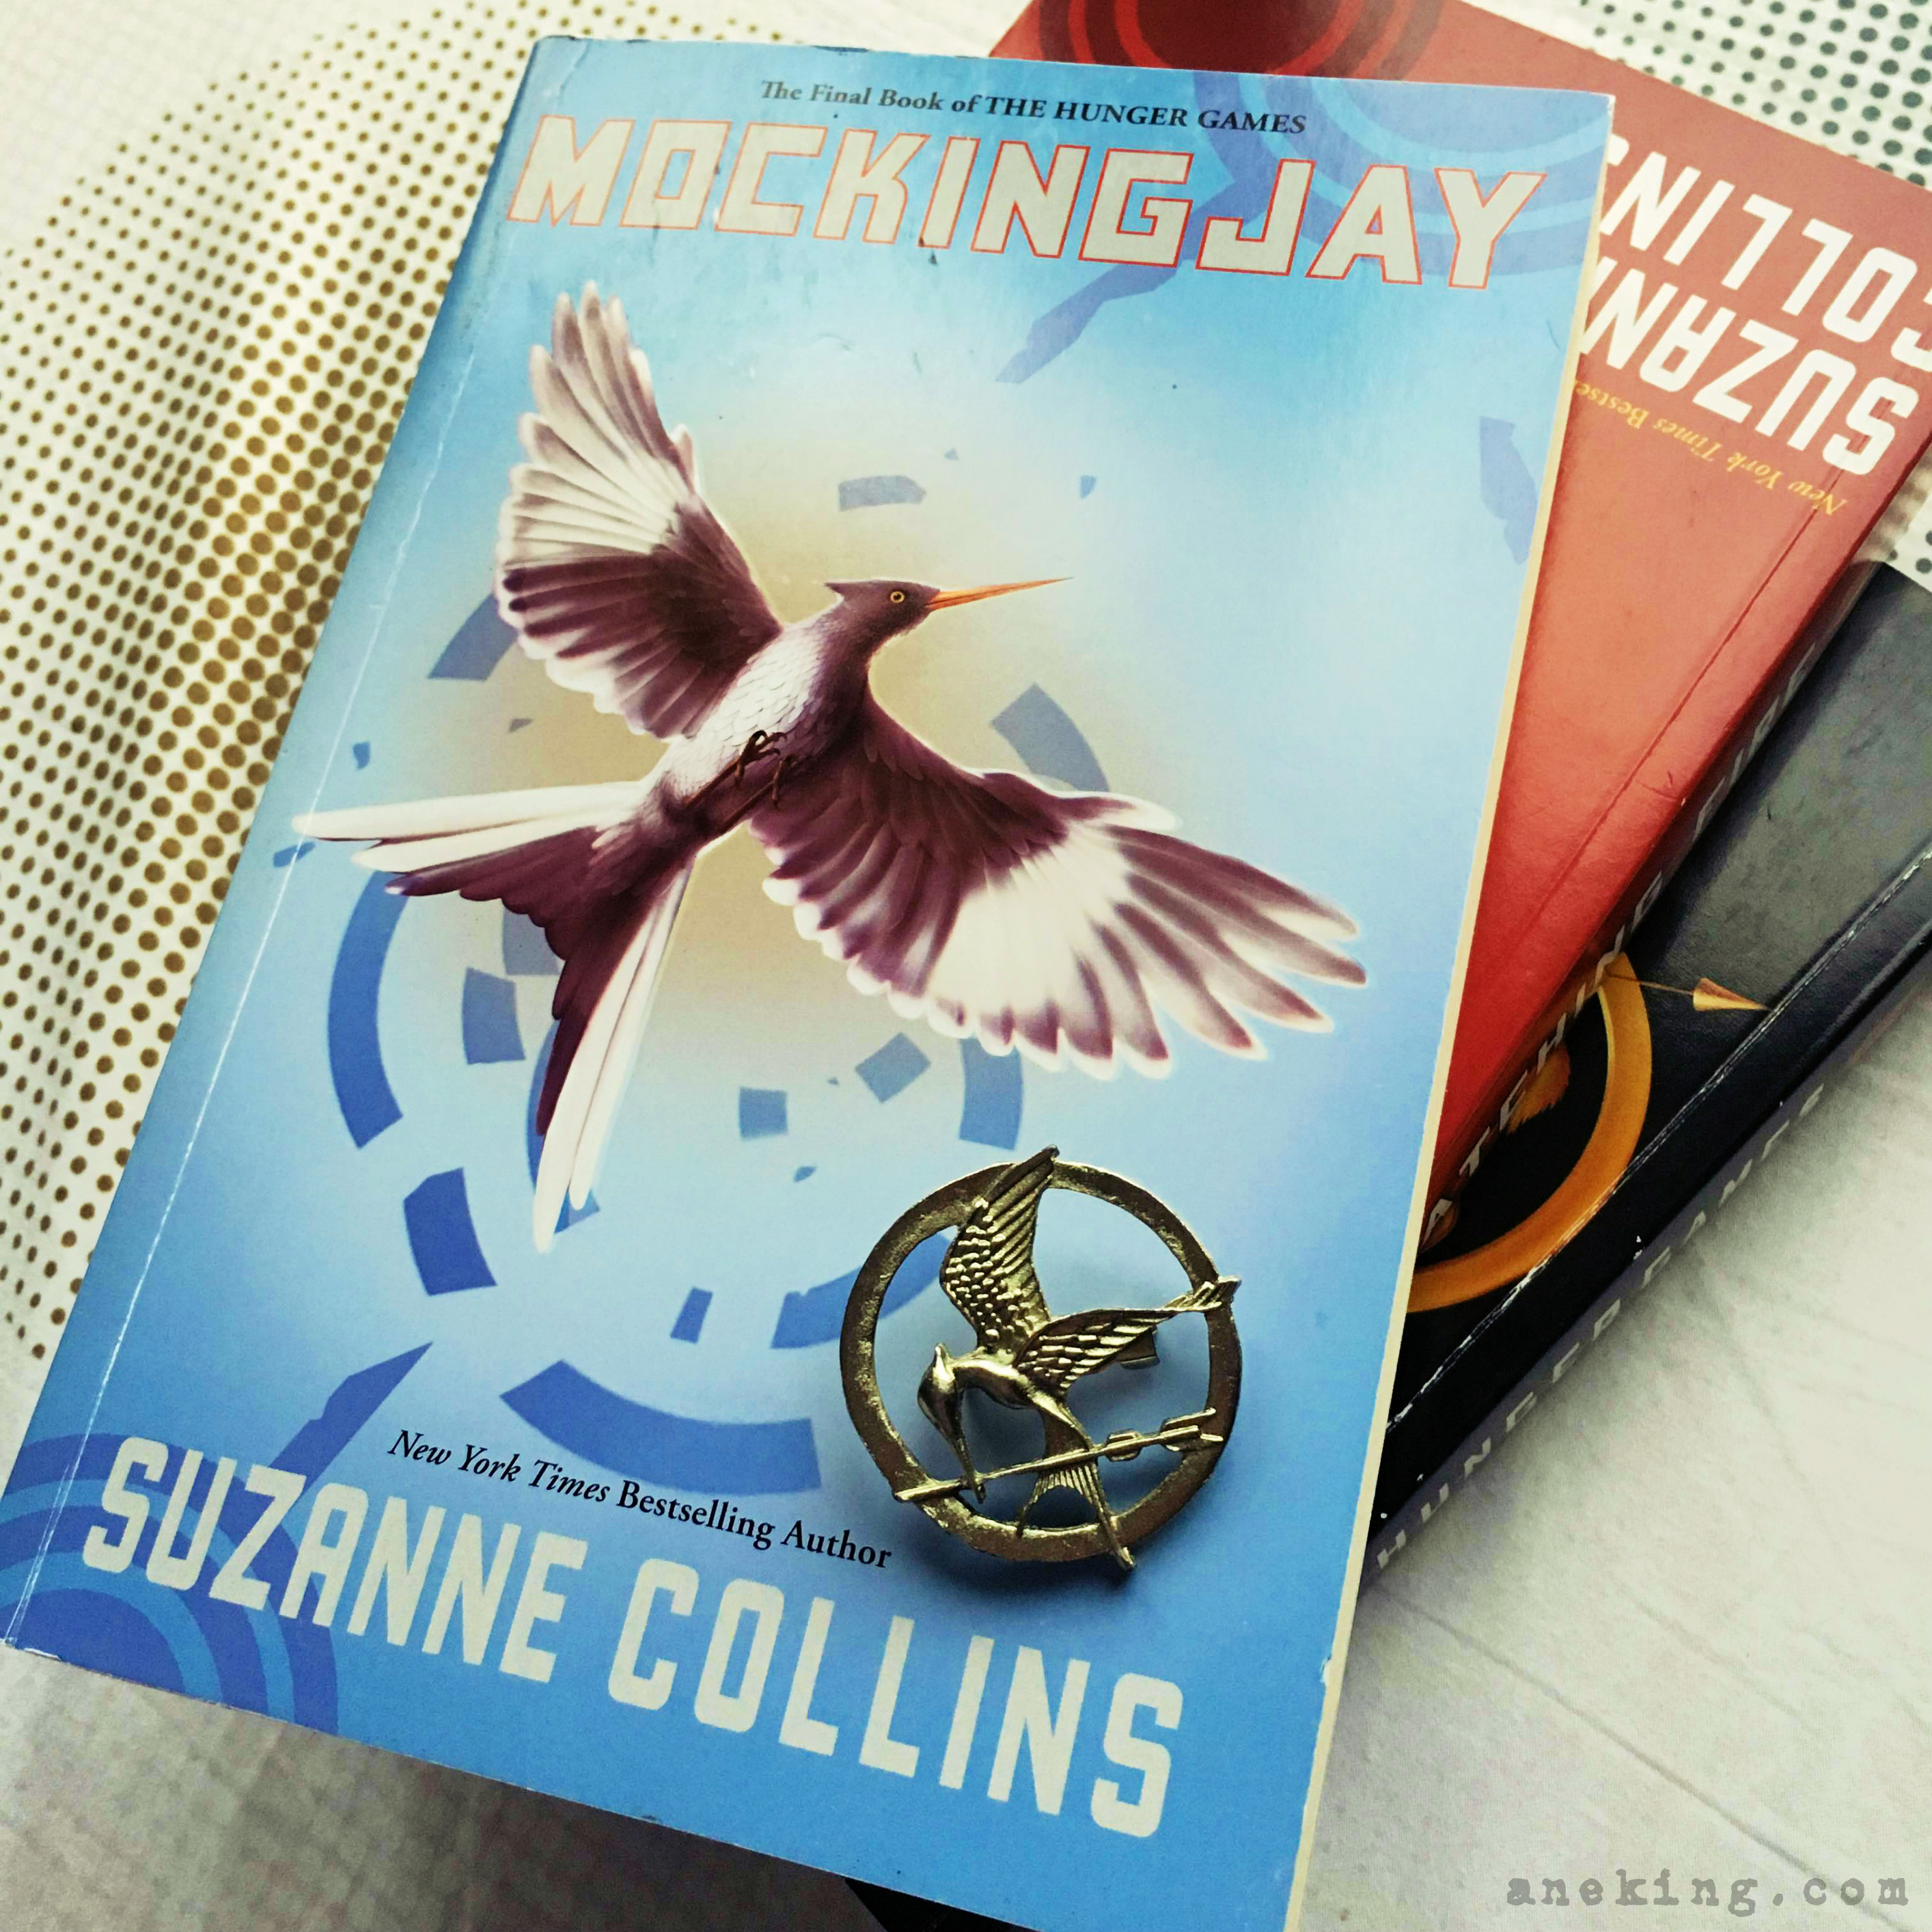 hunger games book review The hunger games combines elements of an intense survival adventure with a story of friendship and love but the book is more than a page-turner with a strong, appealing heroine but the book is more than a page-turner with a strong, appealing heroine.